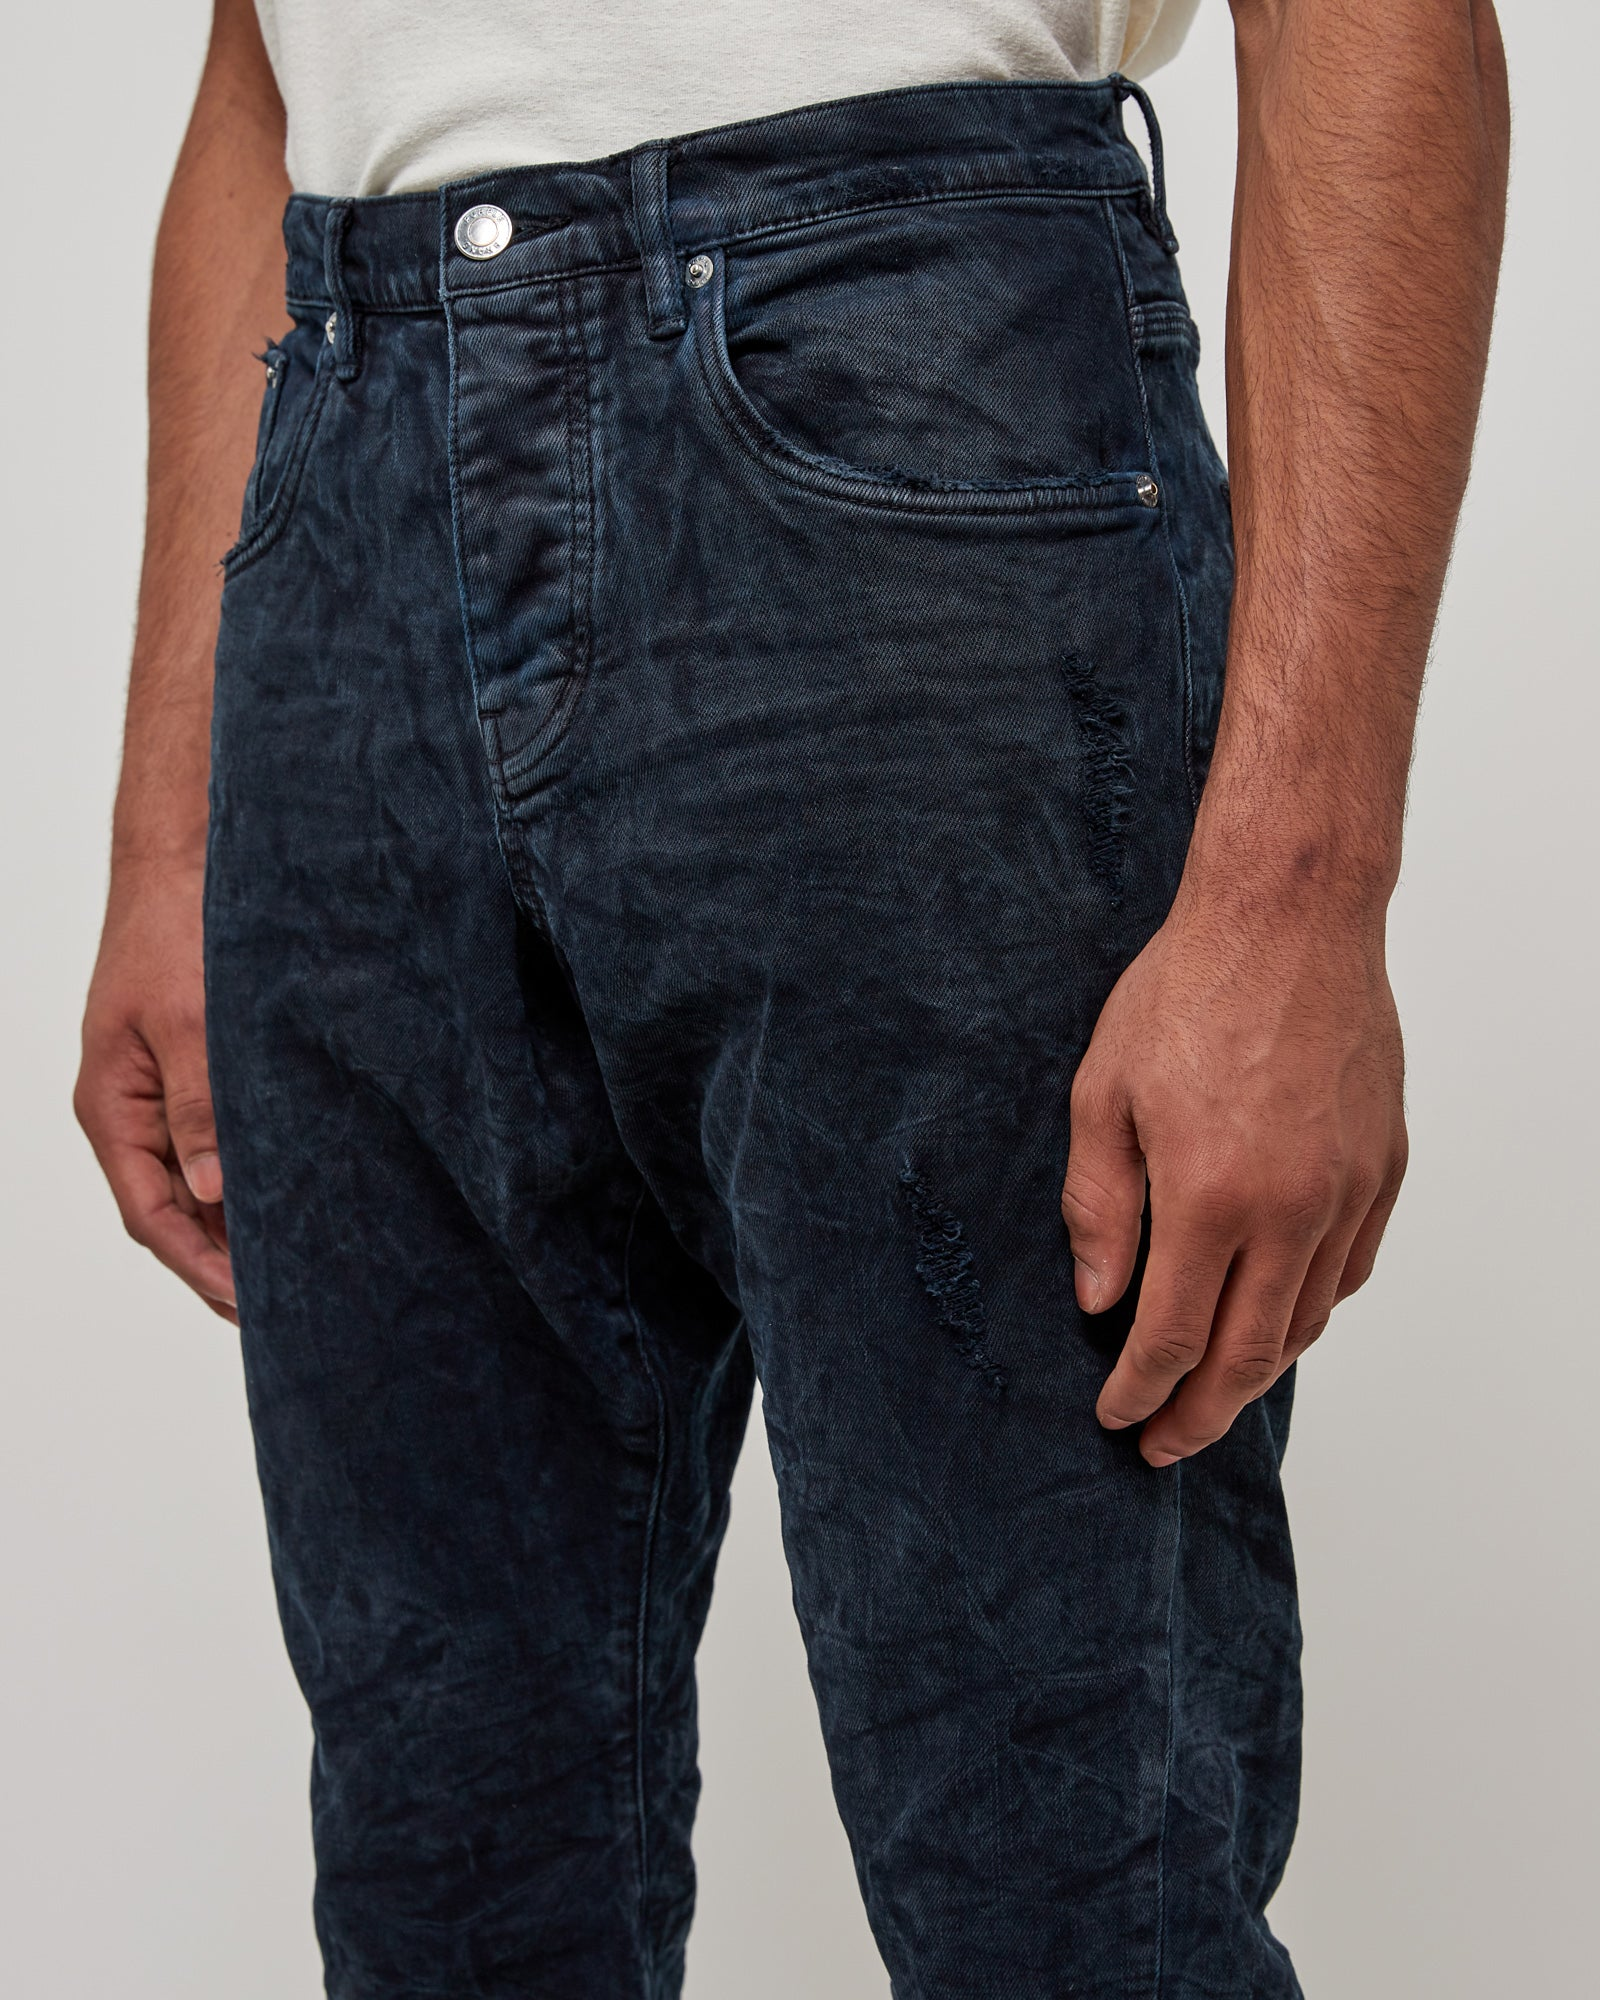 01 Straight Leg Jeans in Overdyed Vintage NS